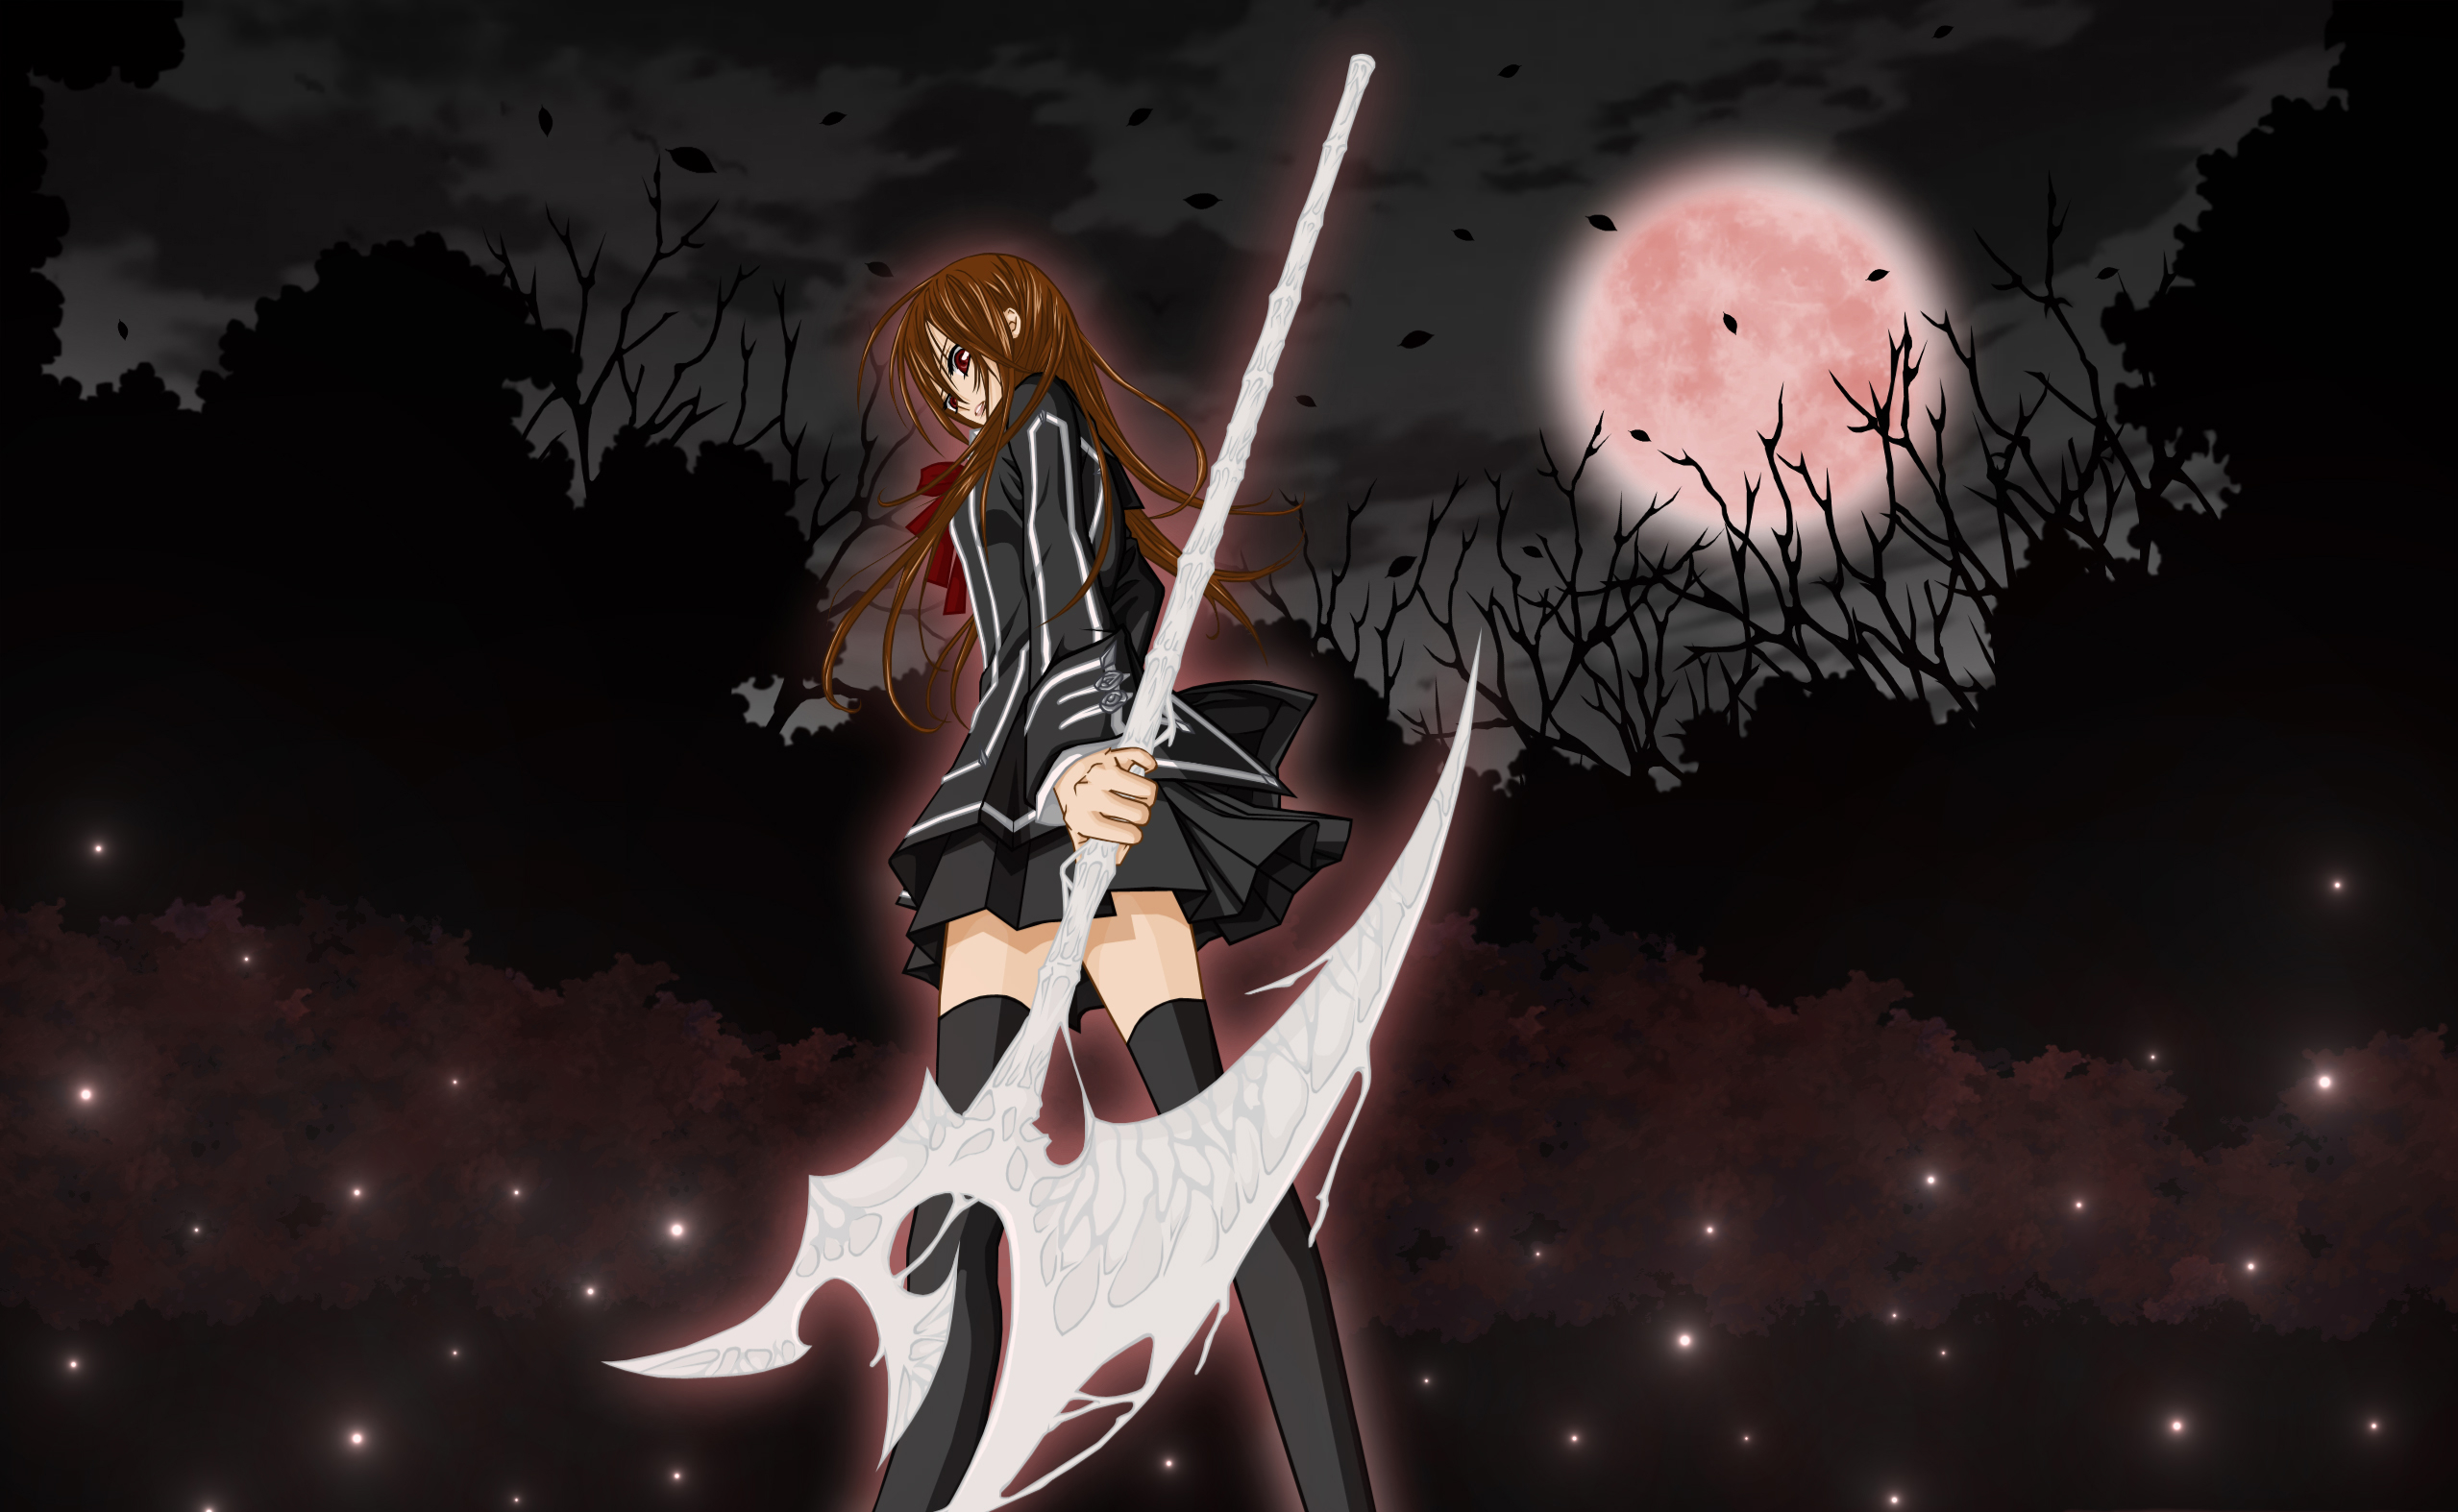 Vampire knight hd wallpaper background image 2558x1574 - Vampire knight anime wallpaper ...